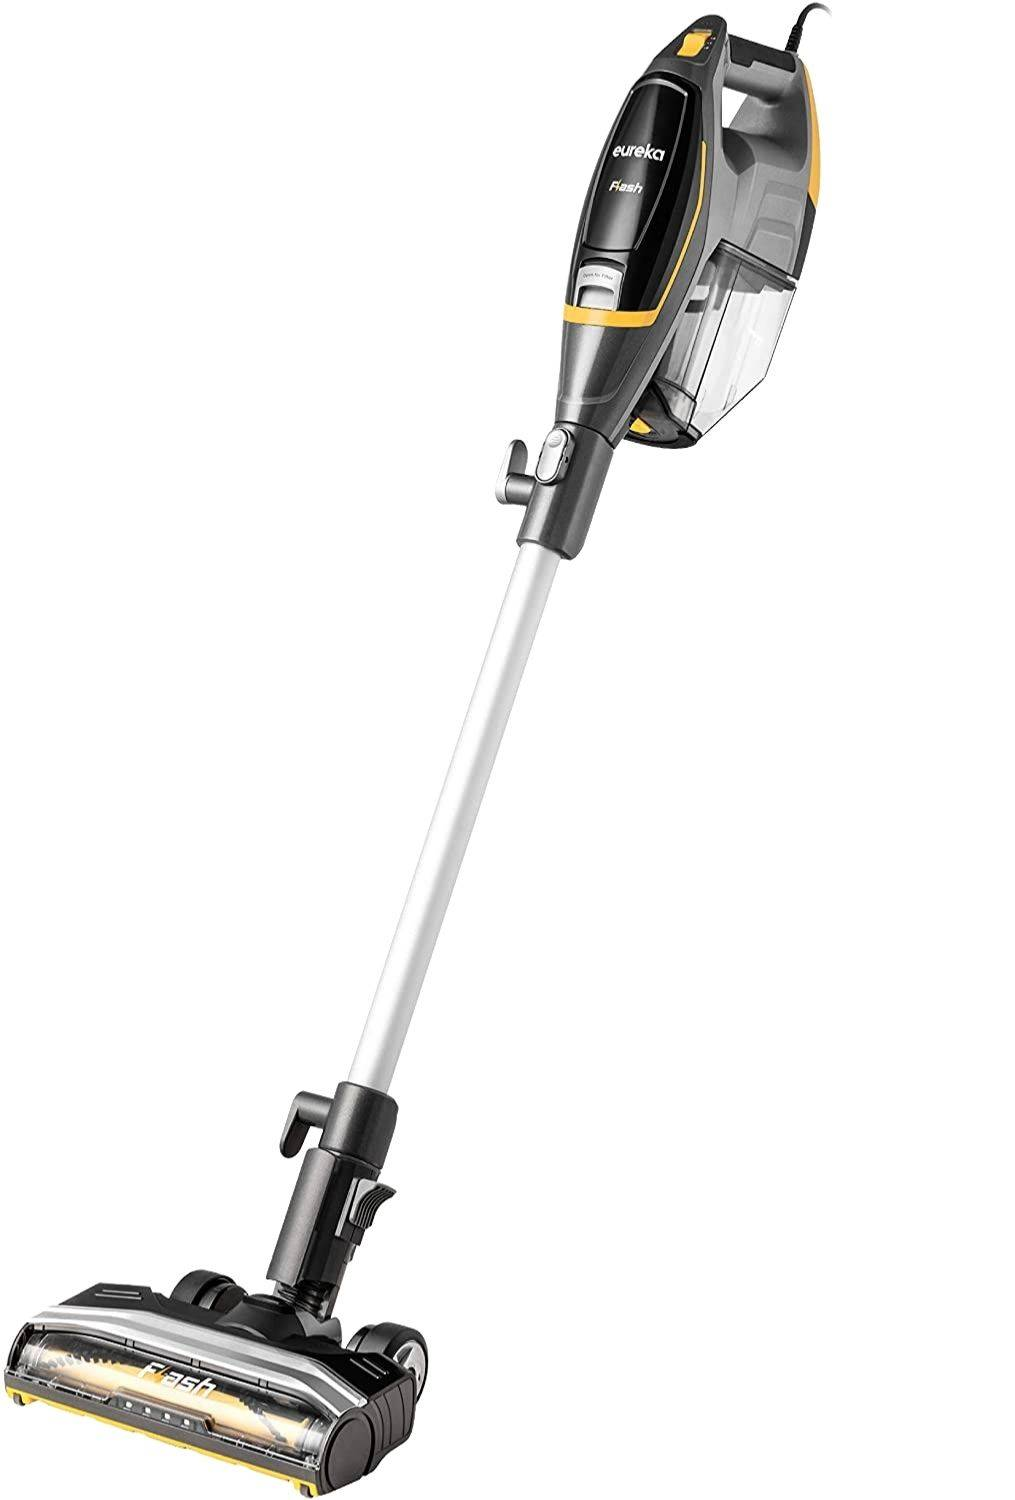 Eureka Flash Lightweight Stick Vacuum Cleaner for Carpeted Stairs